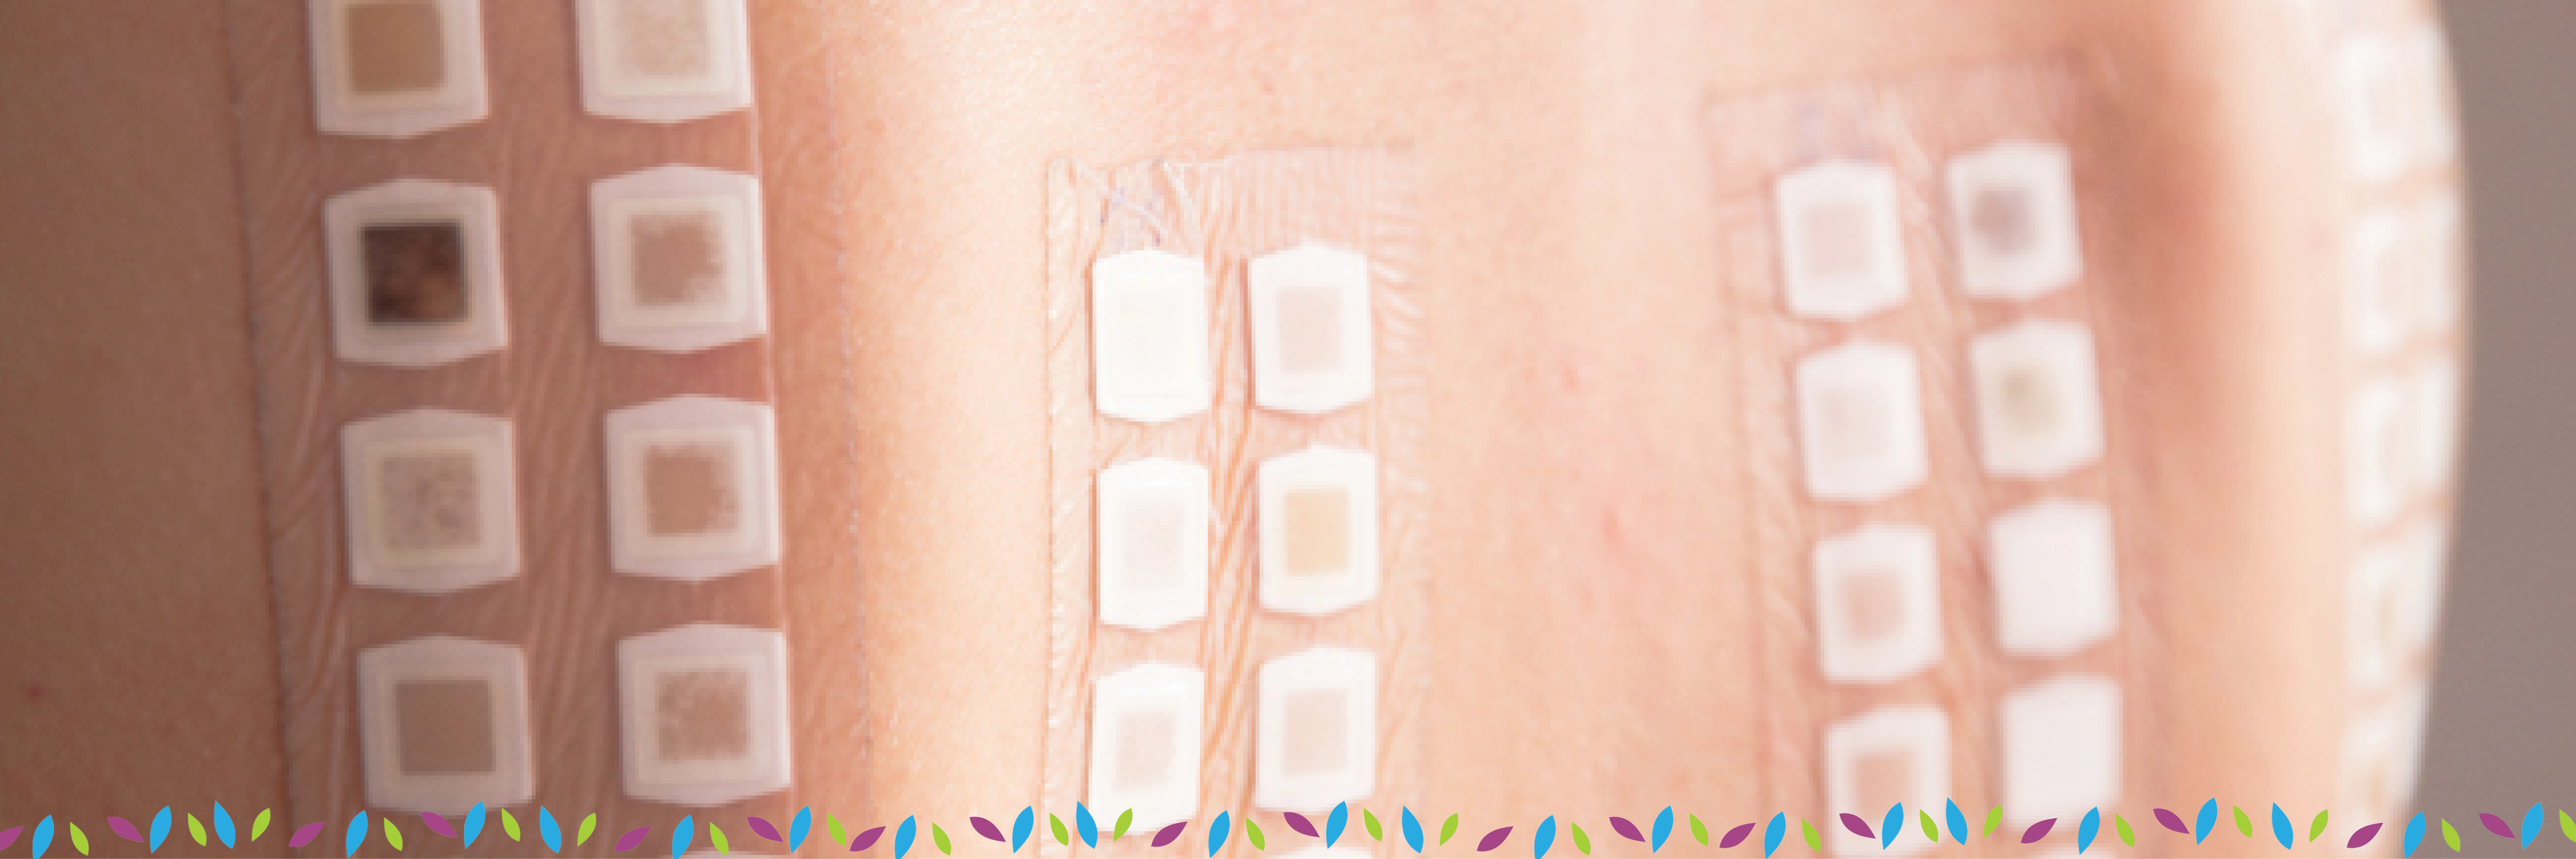 Allergy Skin Patch Testing